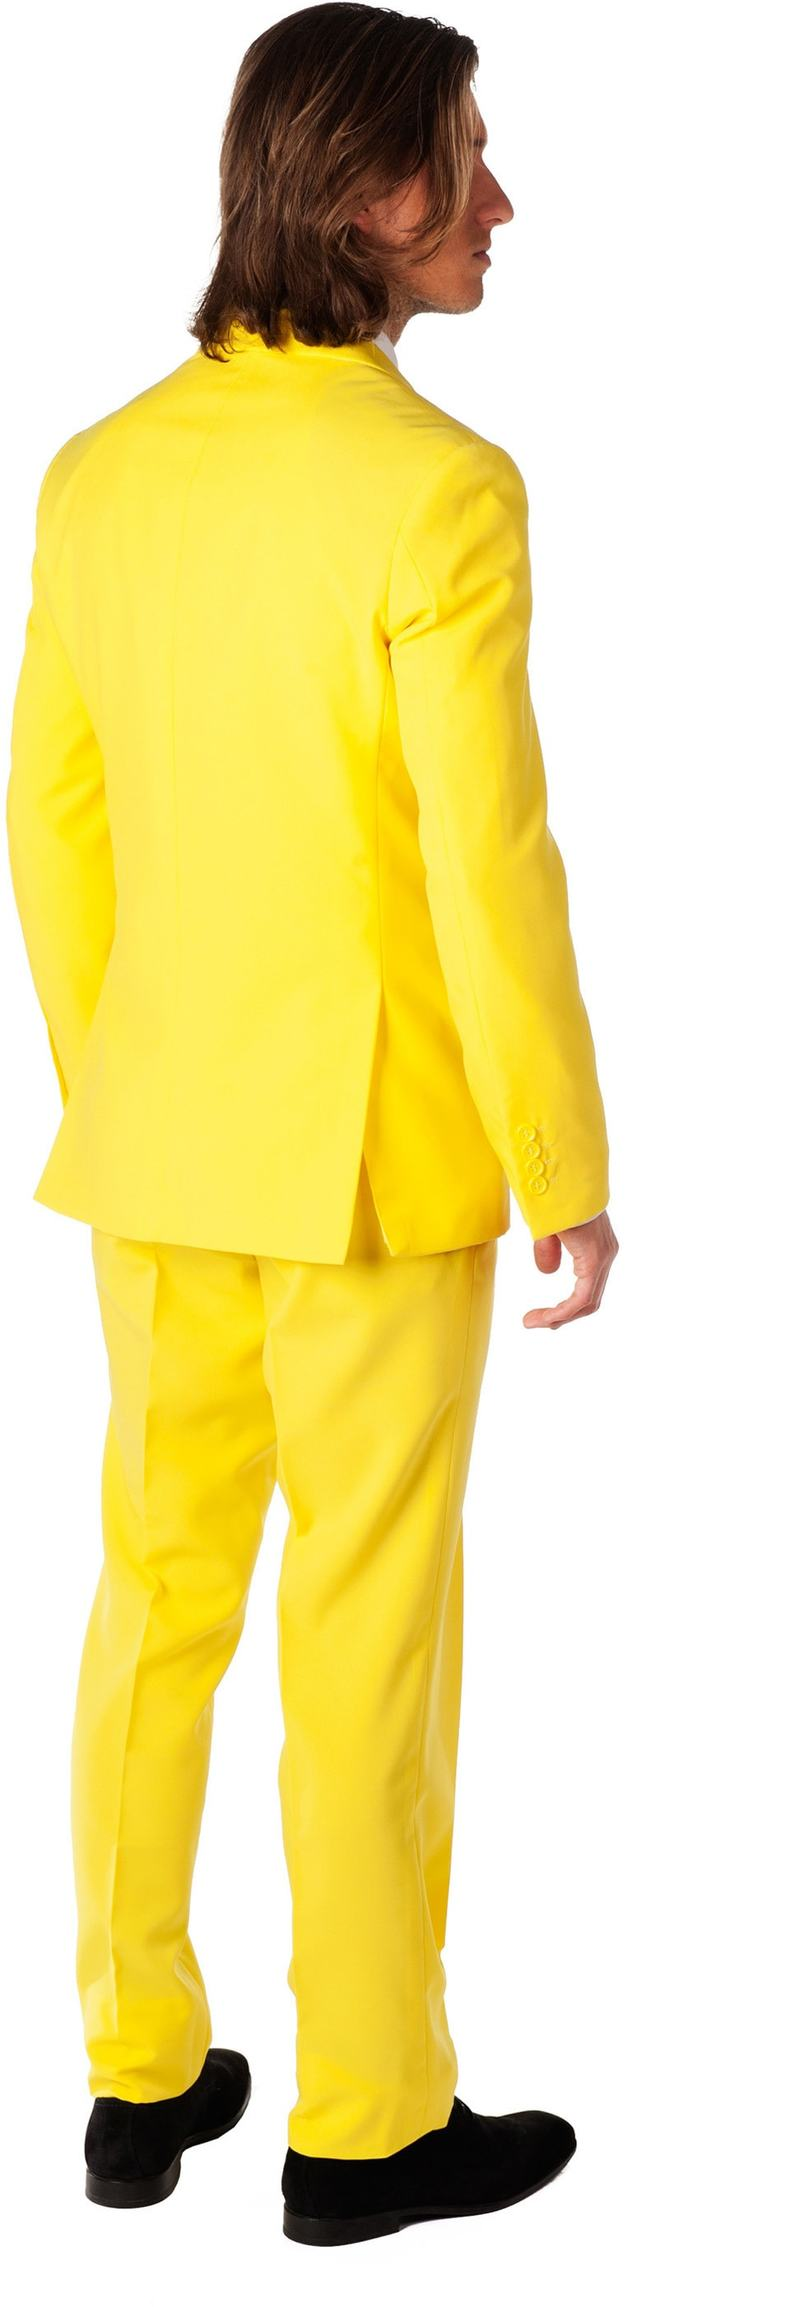 OppoSuits Yellow Fellow Kostüm Foto 1